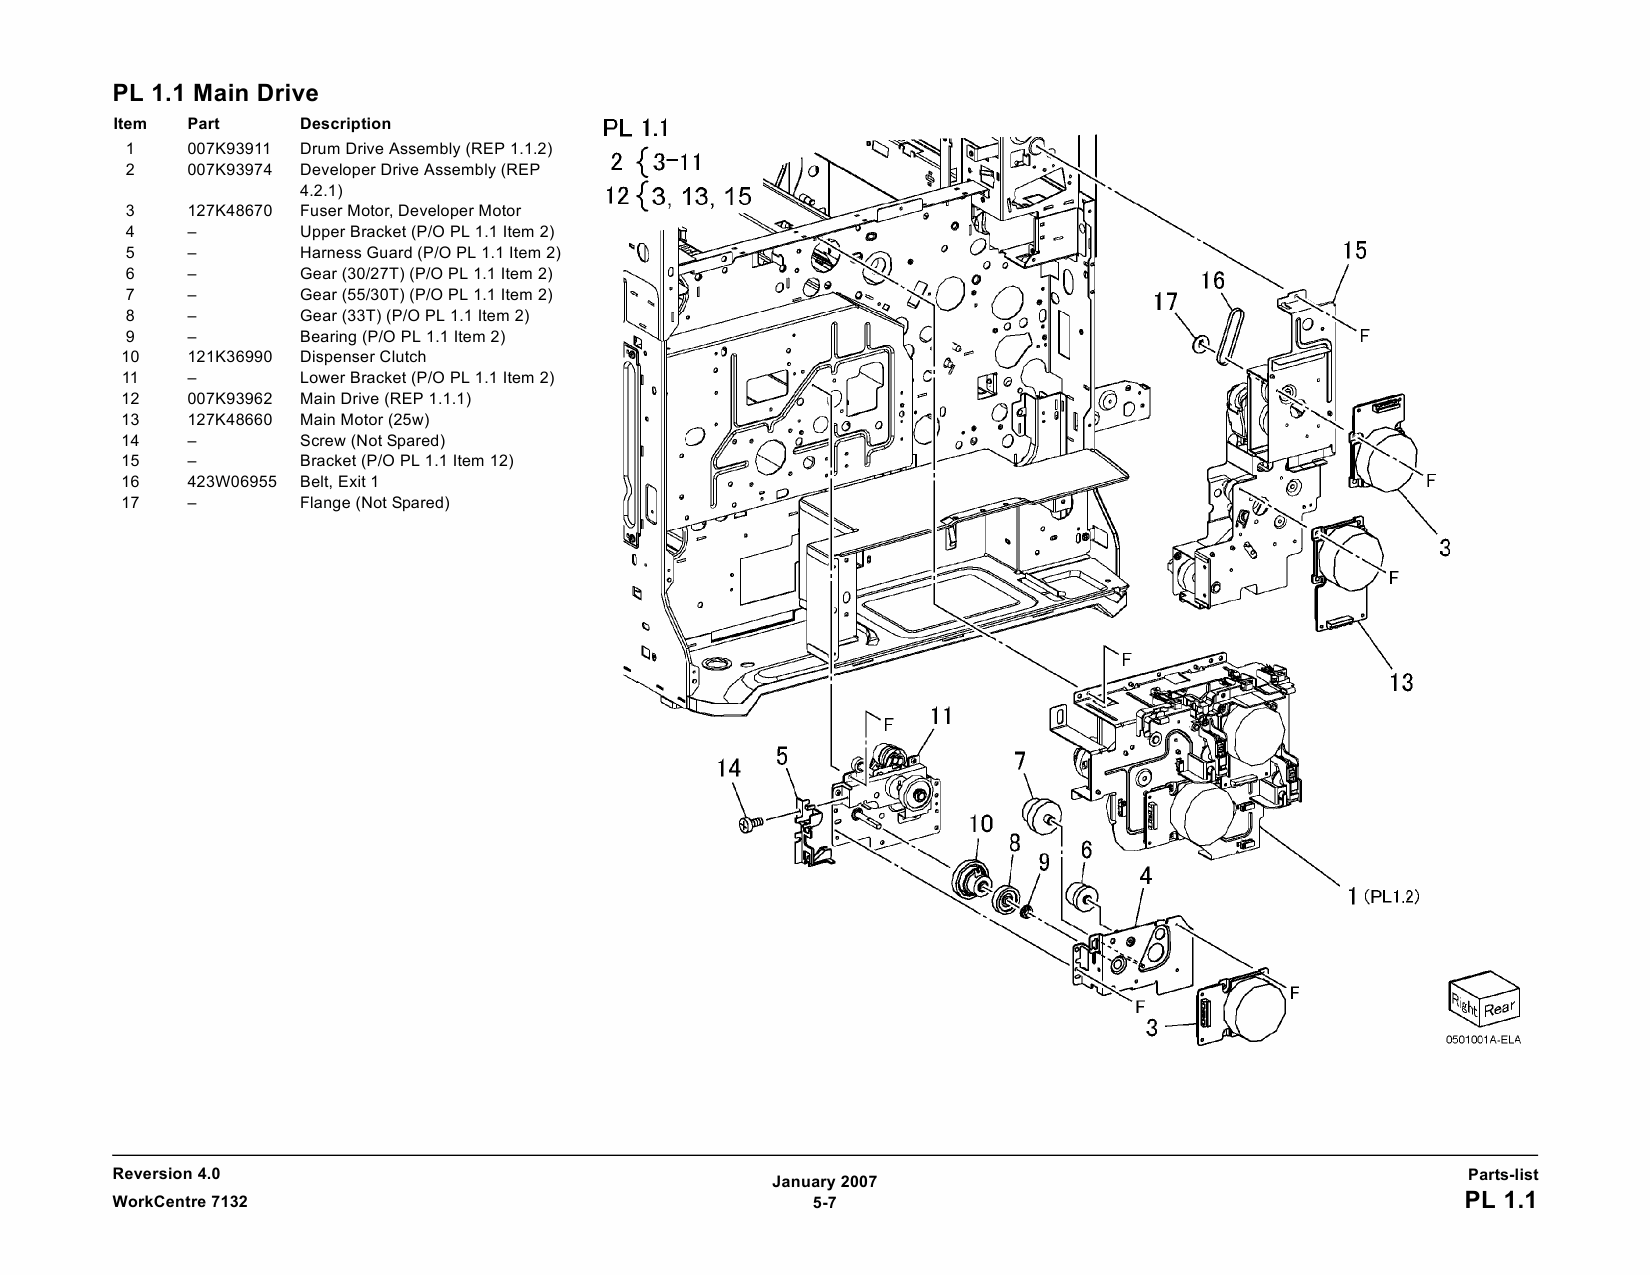 Xerox WorkCentre 7132 Parts List and Service Manual